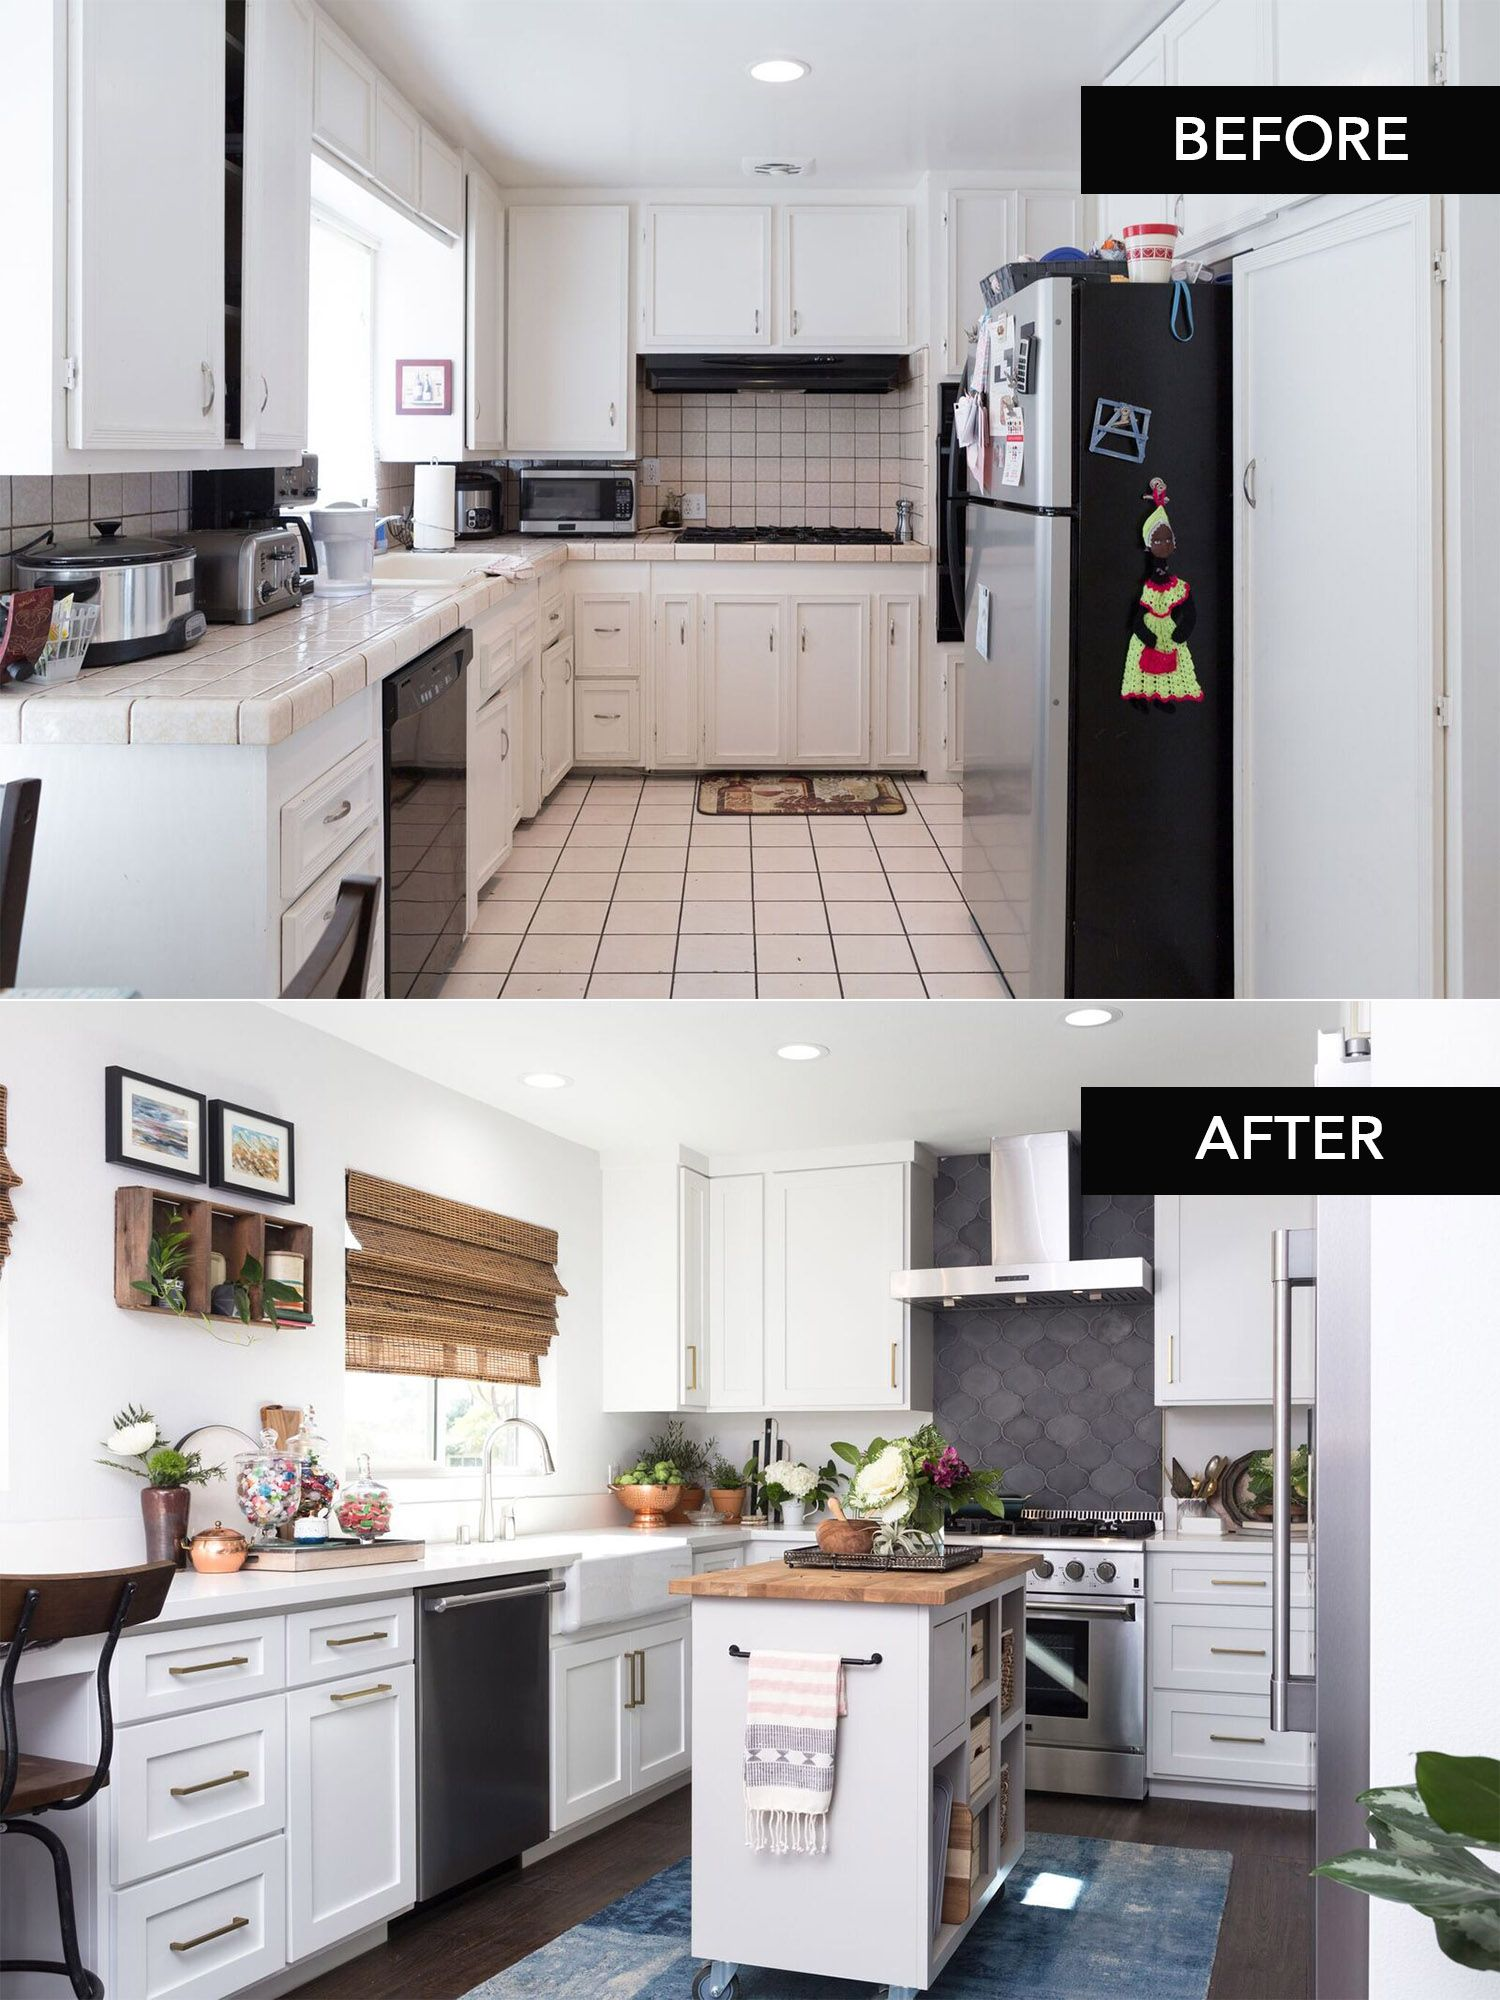 STUNNING Before & After Kitchen Transformation As Seen On